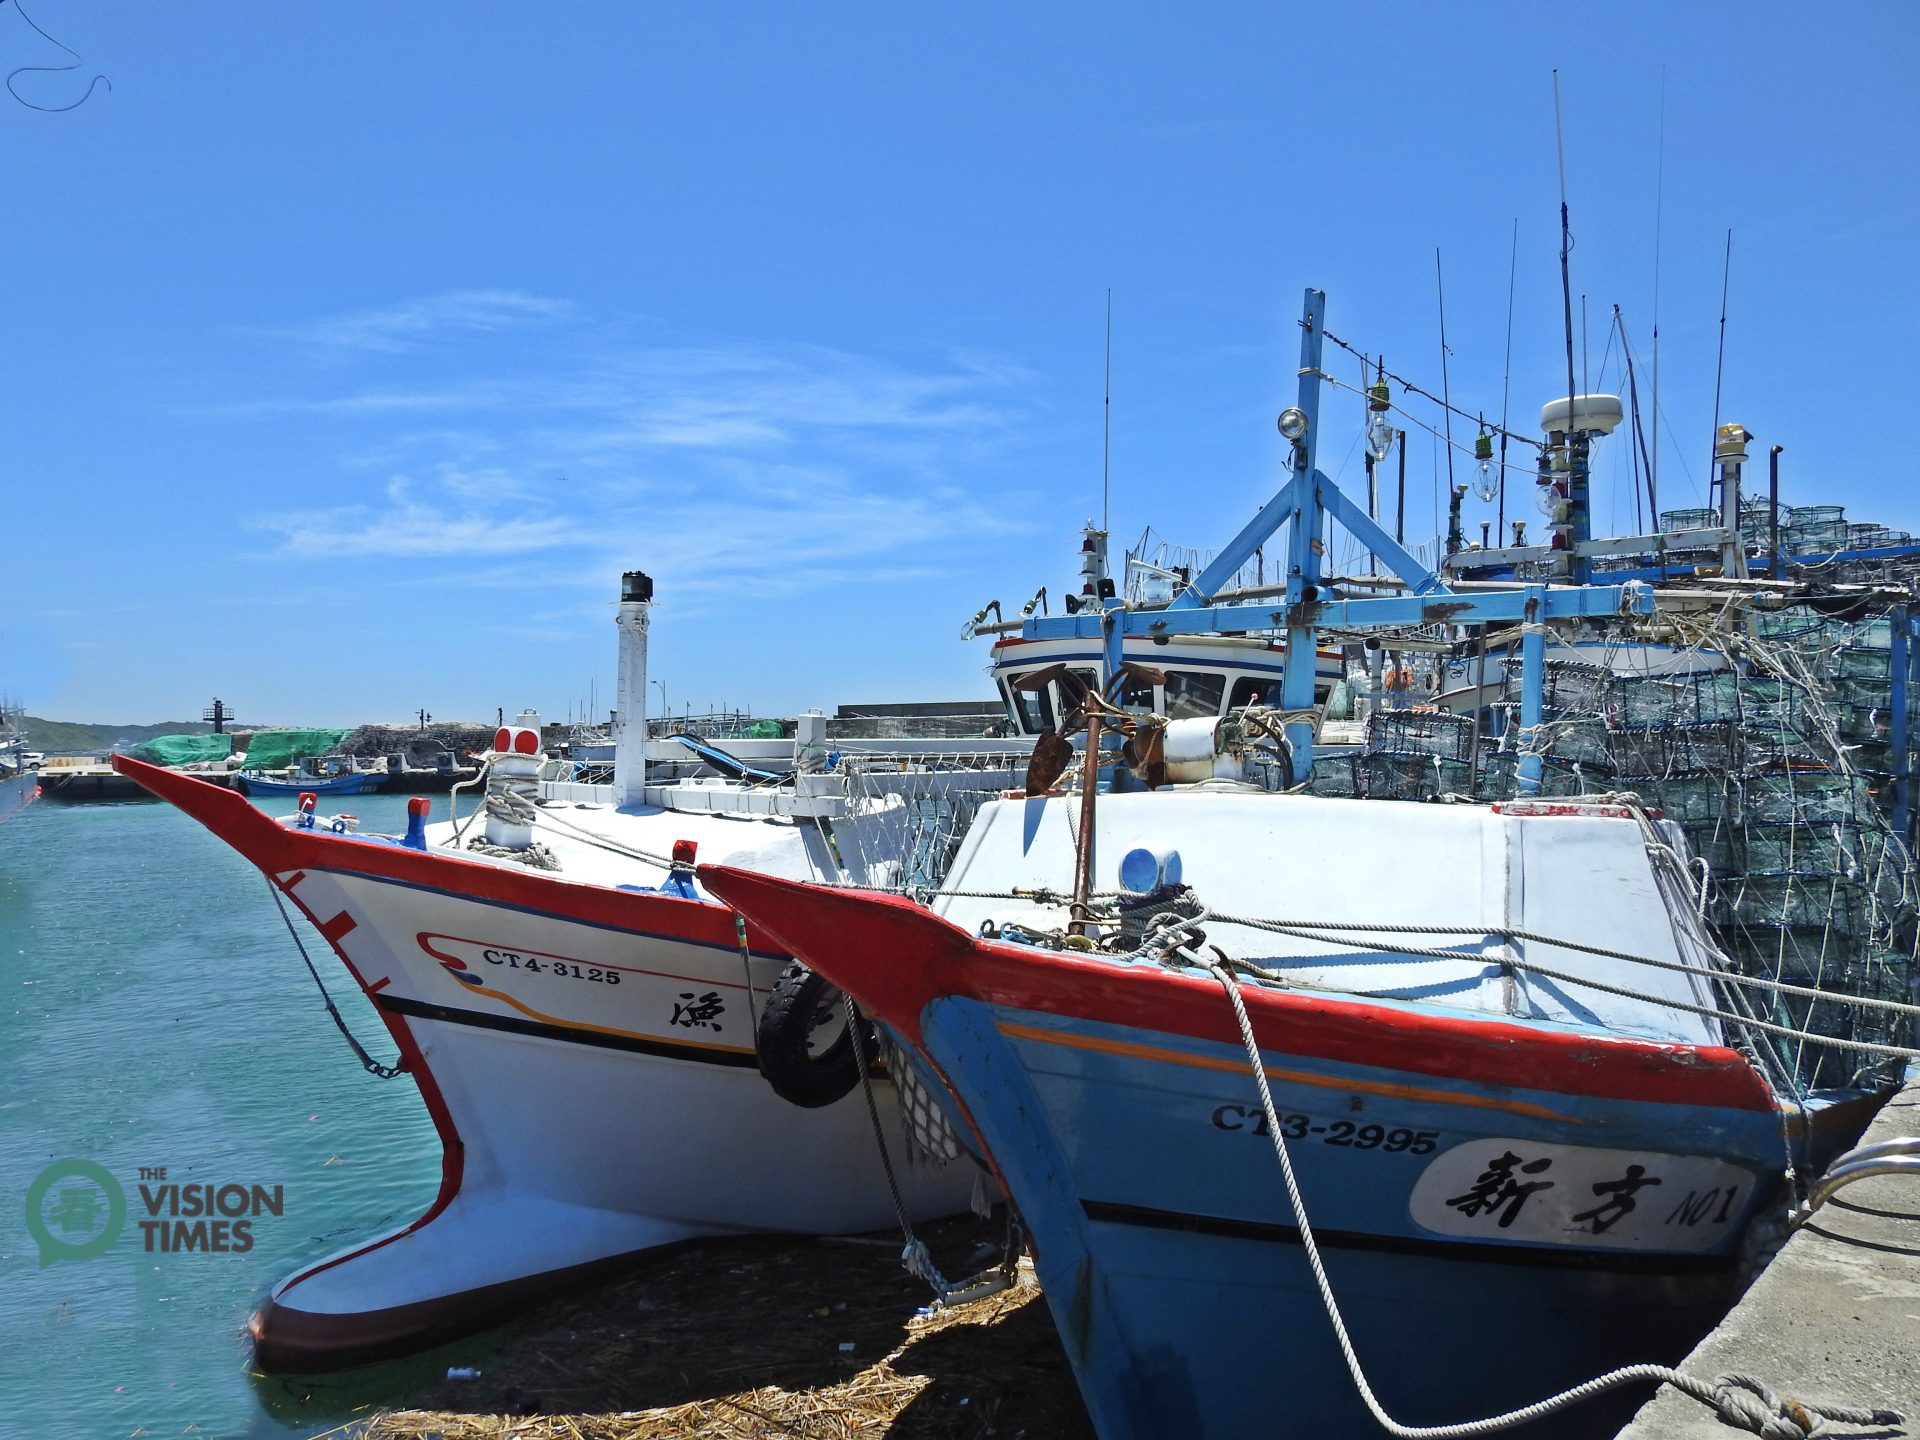 There are about 50 fishing boats in Wanli District that are engaged in the crab fishery. (Image: Billy Shyu / Vision Times)